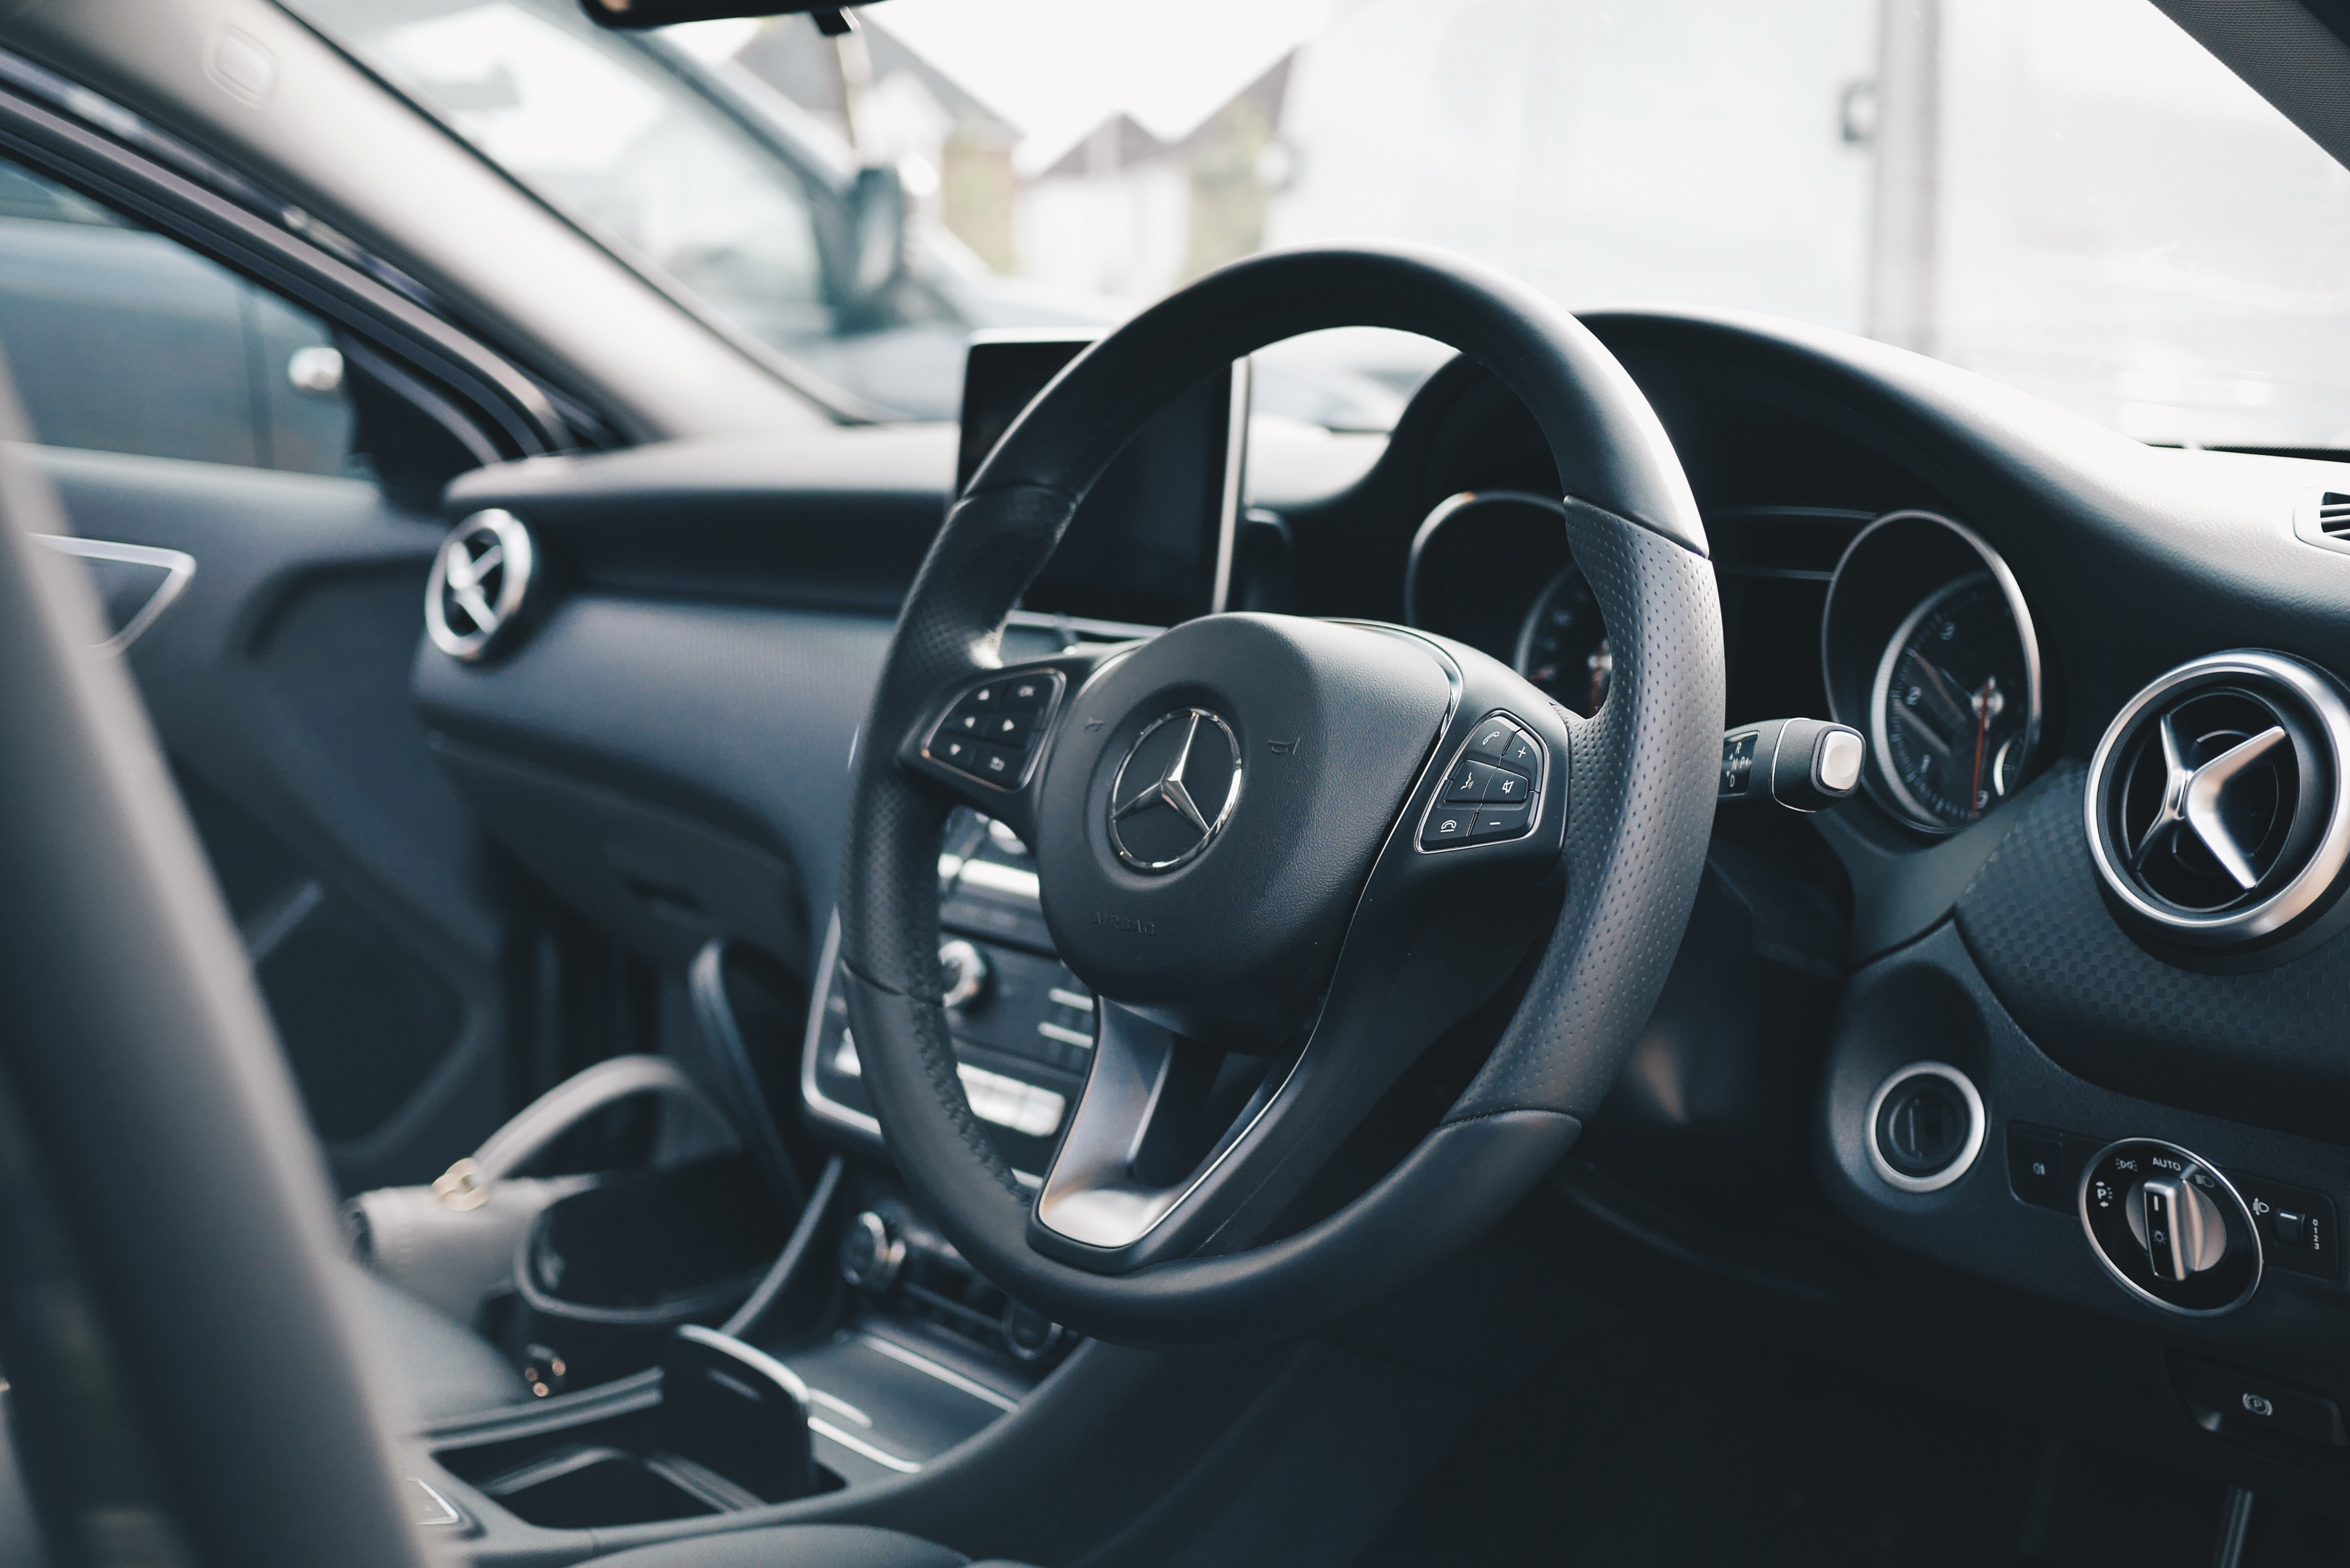 Dashboard and steering wheel of a Mercedes car